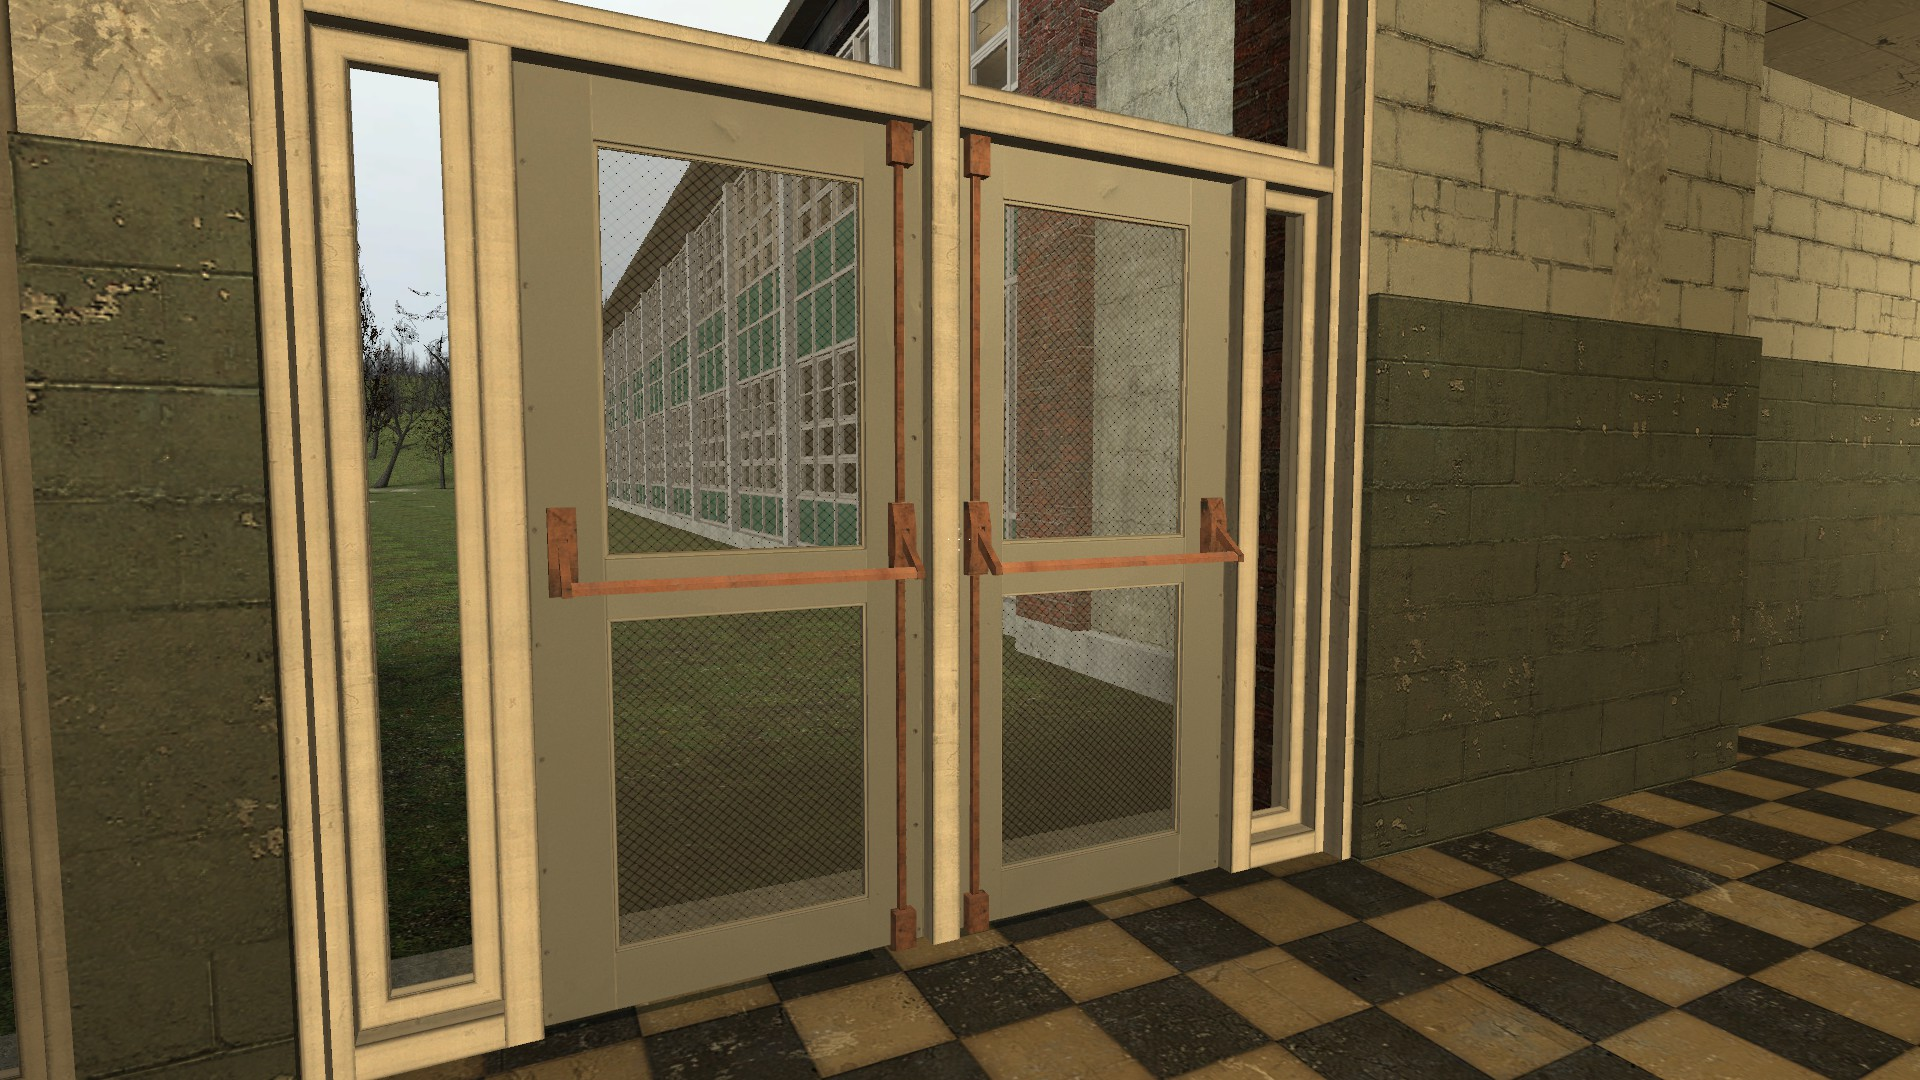 Imvu door textures room door texture pilotproject org - The Texture Will Probably Need To Be Refined A Bit But At Least The Models Are In Image Number 54 Of Door Textures